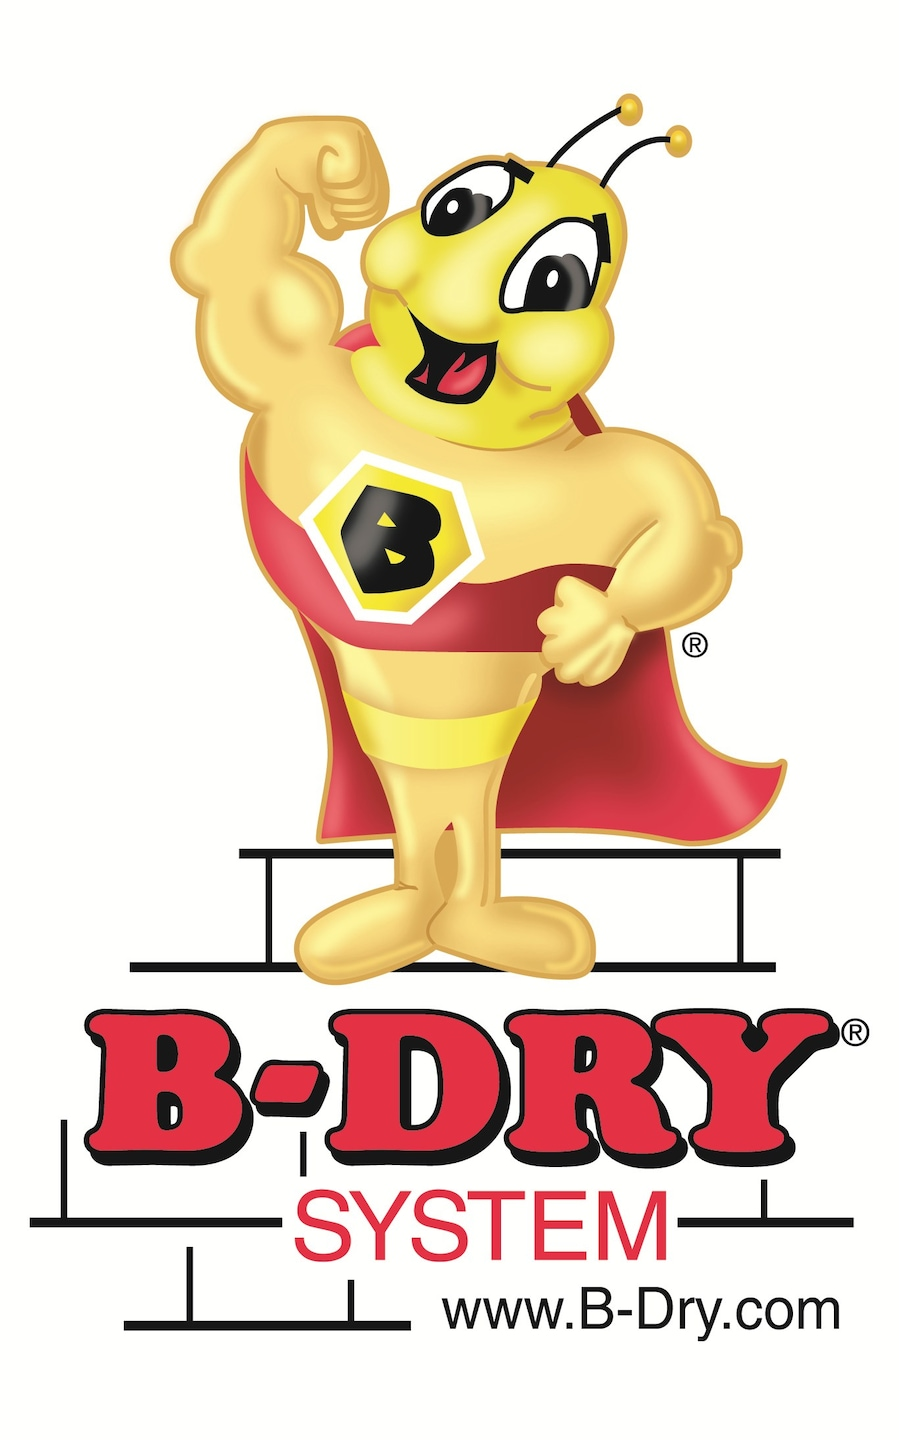 B-Dry System of Central & West Michigan Inc